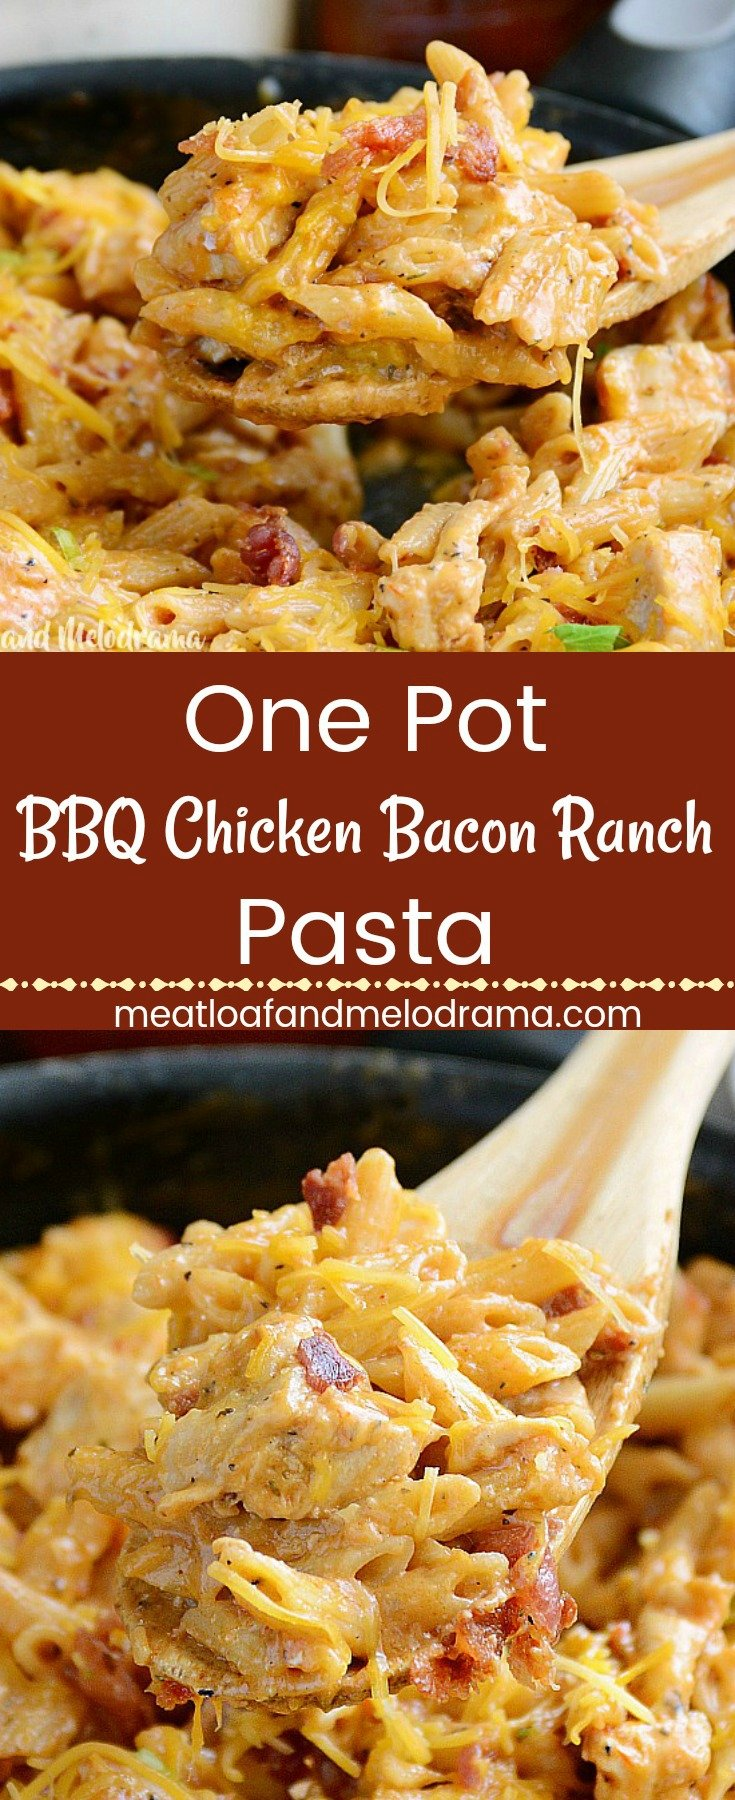 One Pot BBQ Chicken Bacon Ranch Pasta - A quick and easy one dish dinner made with chicken, bacon and penne pasta in a creamy barbecue ranch sauce. Ready in 30 minutes and perfect for busy weeknights! from Meatloaf and Melodrama